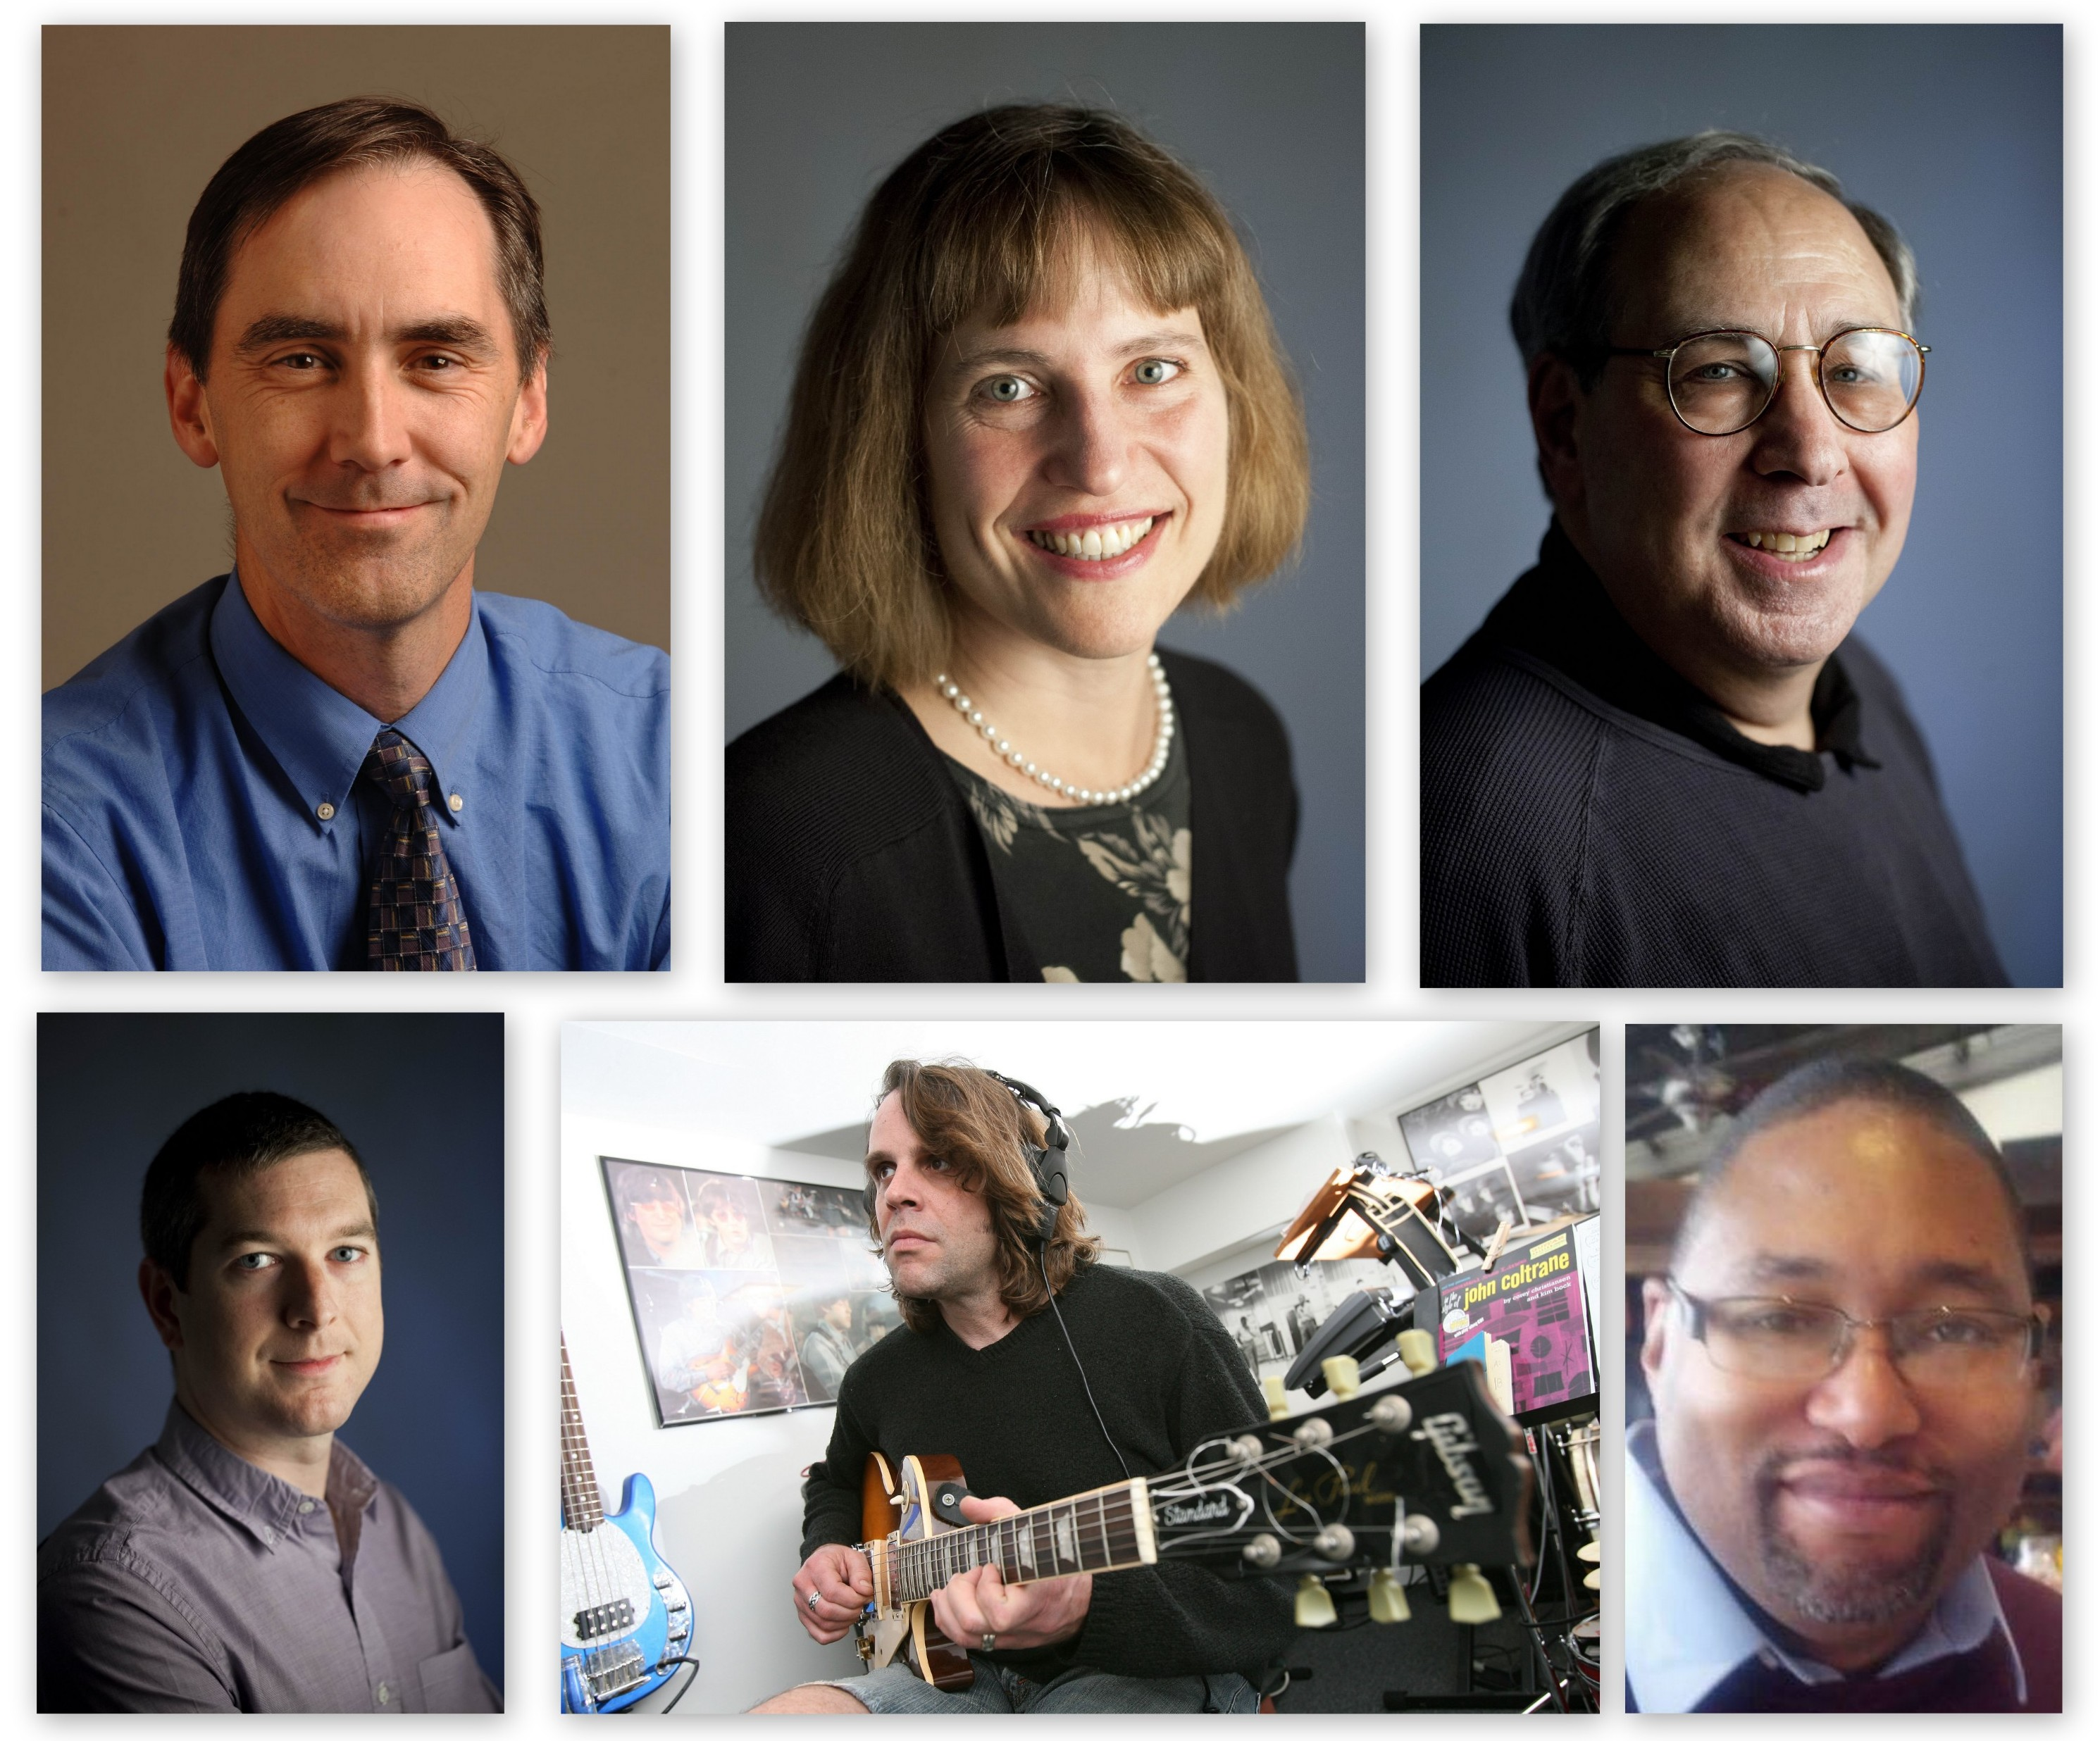 Clockwise from left: Assistant Managing Editor/Features Bruce Andriatch, Classical Music Critic Mary Kunz Goldman, Arts Editor Jeff Simon, copyeditor Trey Bankhead, Pop Music Critic Jeff Miers and Arts Critic Colin Dabkowski.